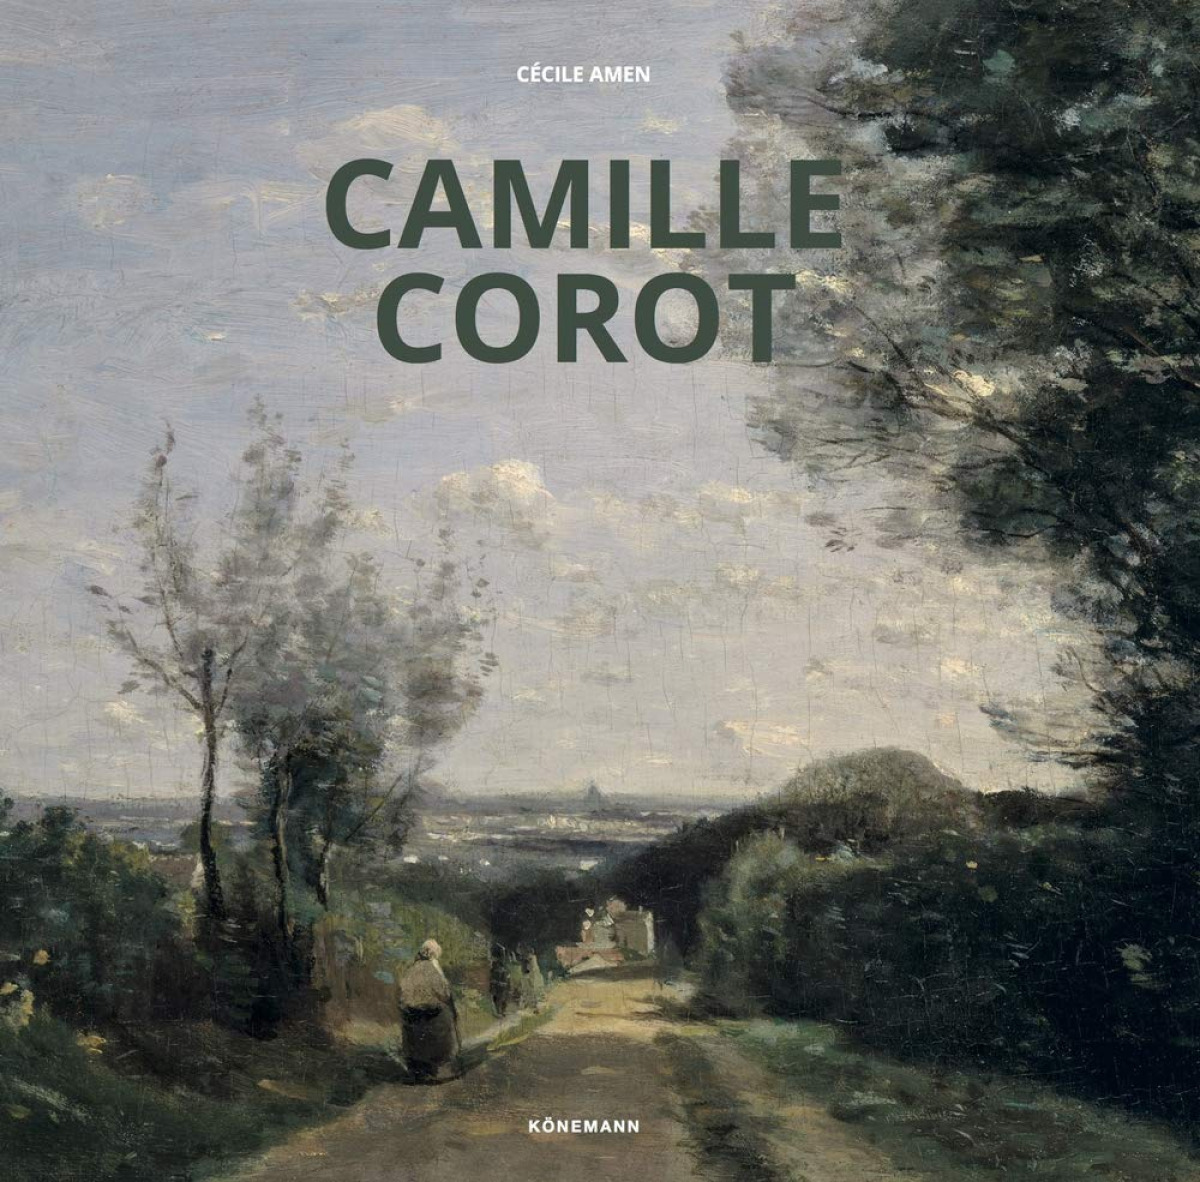 Camille corot 9783741922114